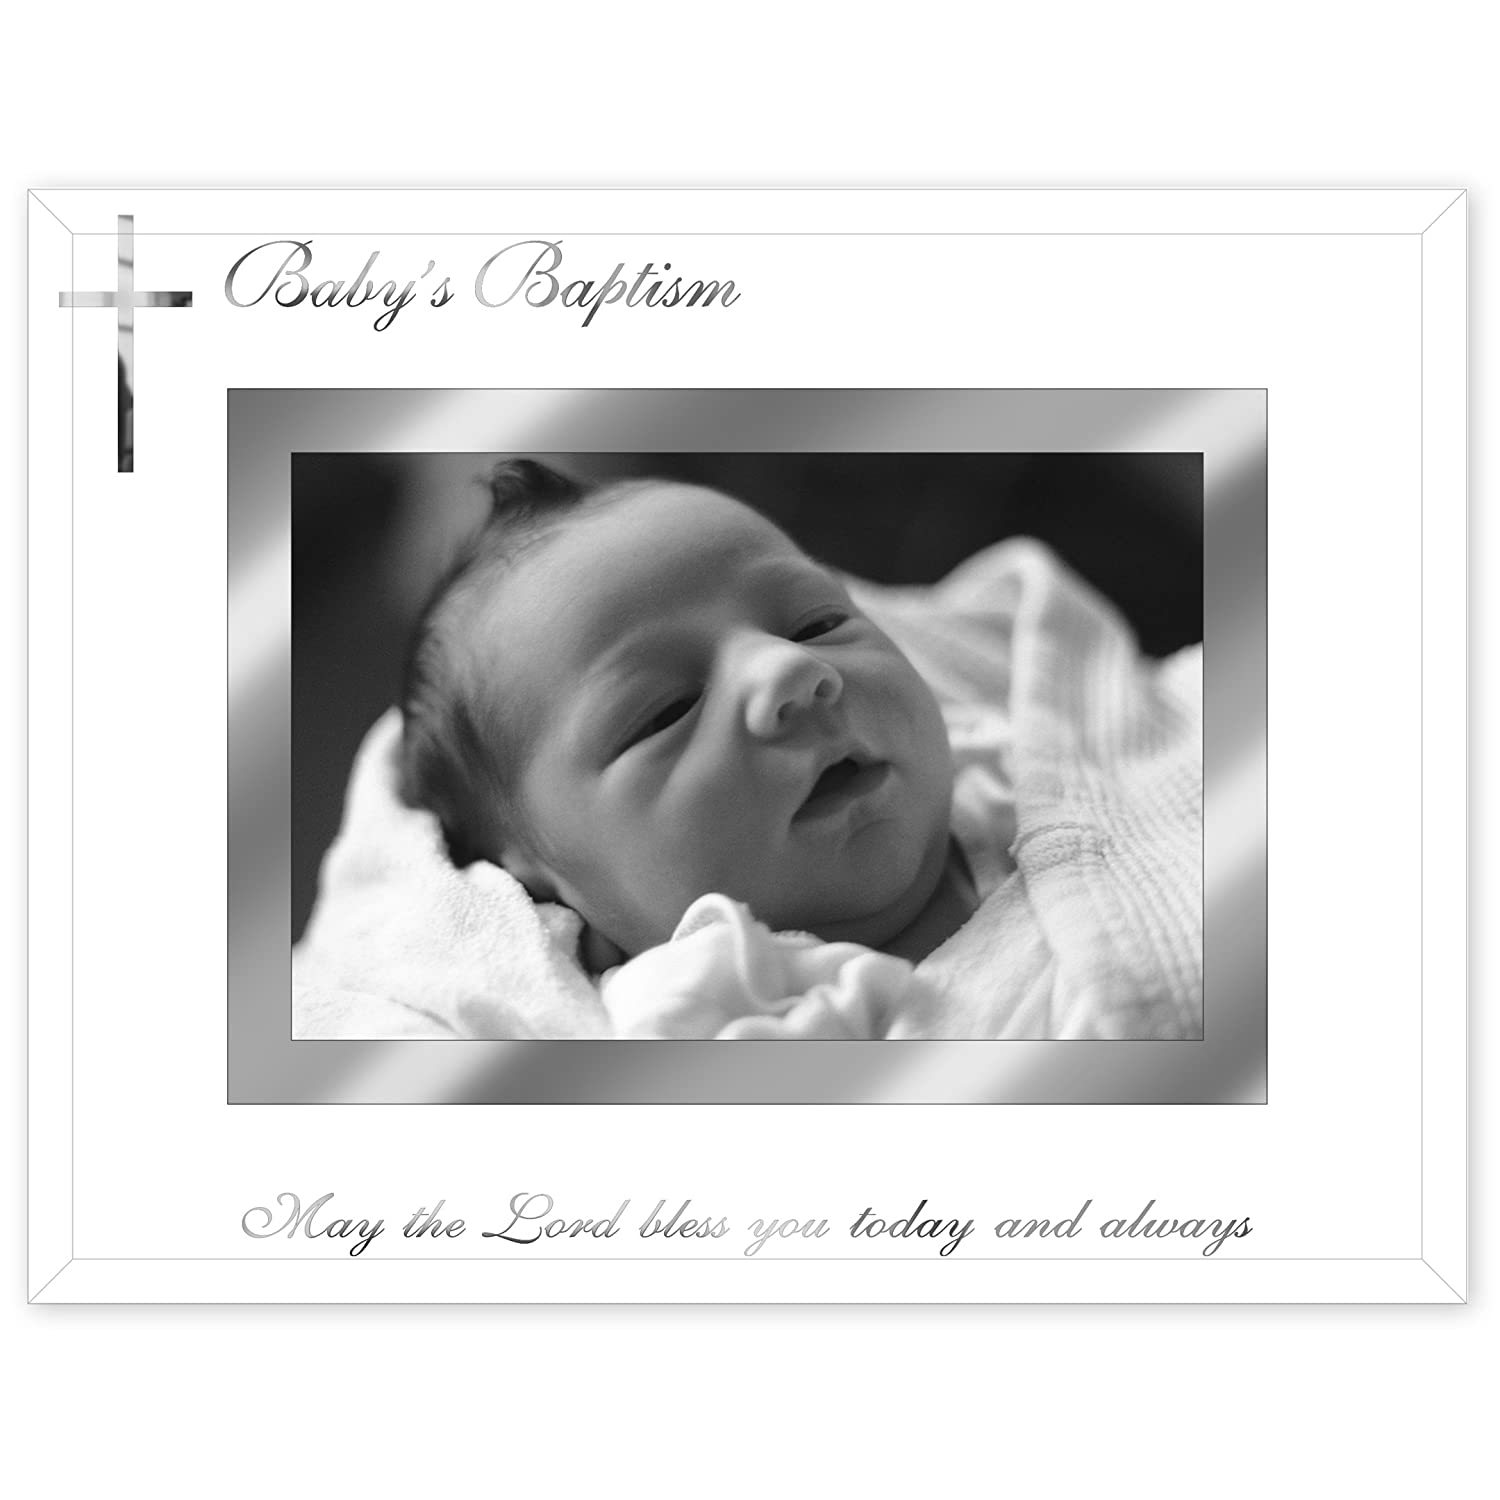 Malden Baby's Baptism Picture Frame, Silver Malden International 6885-64